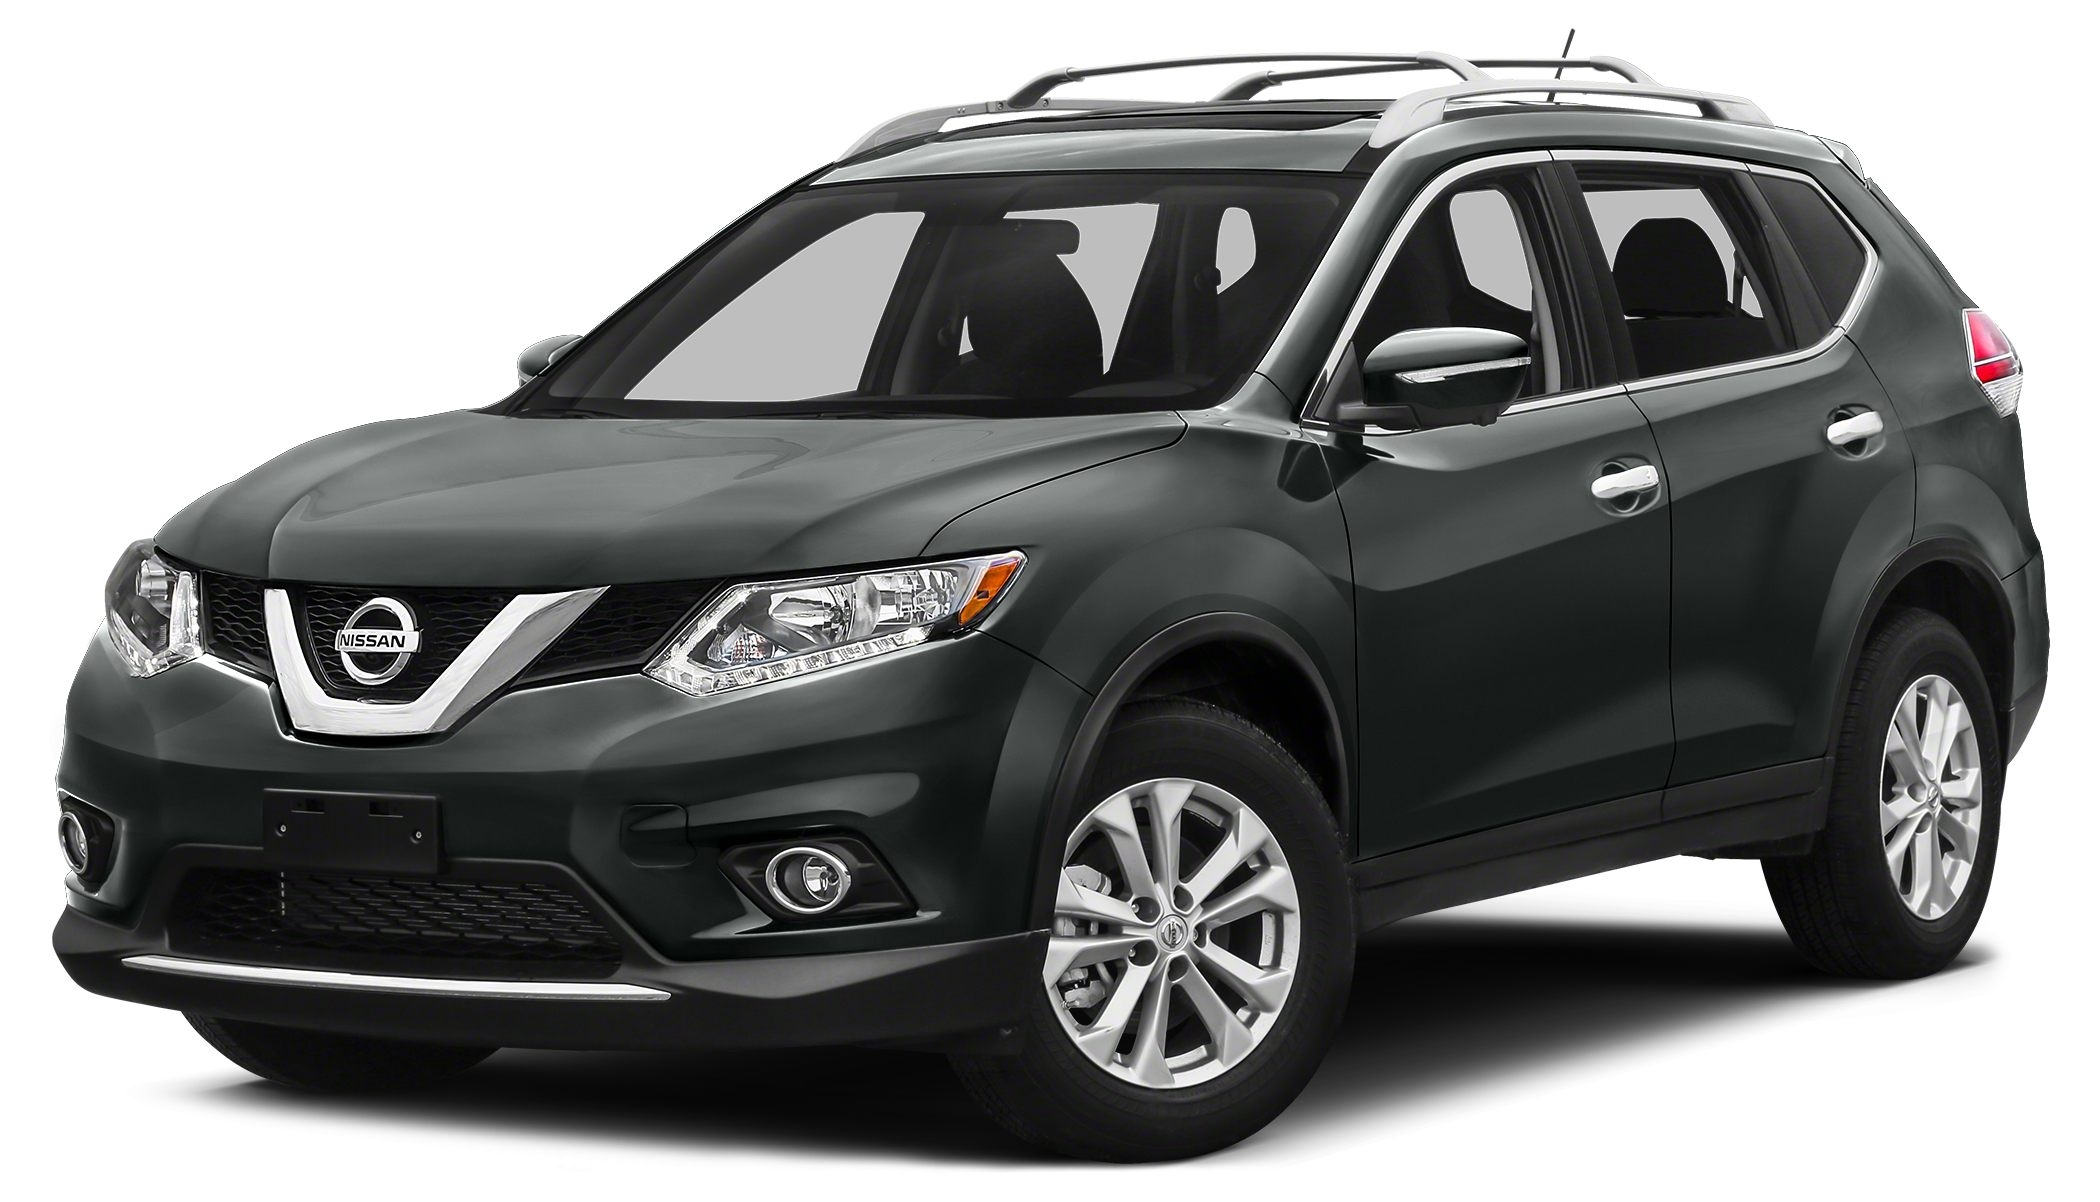 nissan rogue invoice invoice template ideas. Black Bedroom Furniture Sets. Home Design Ideas